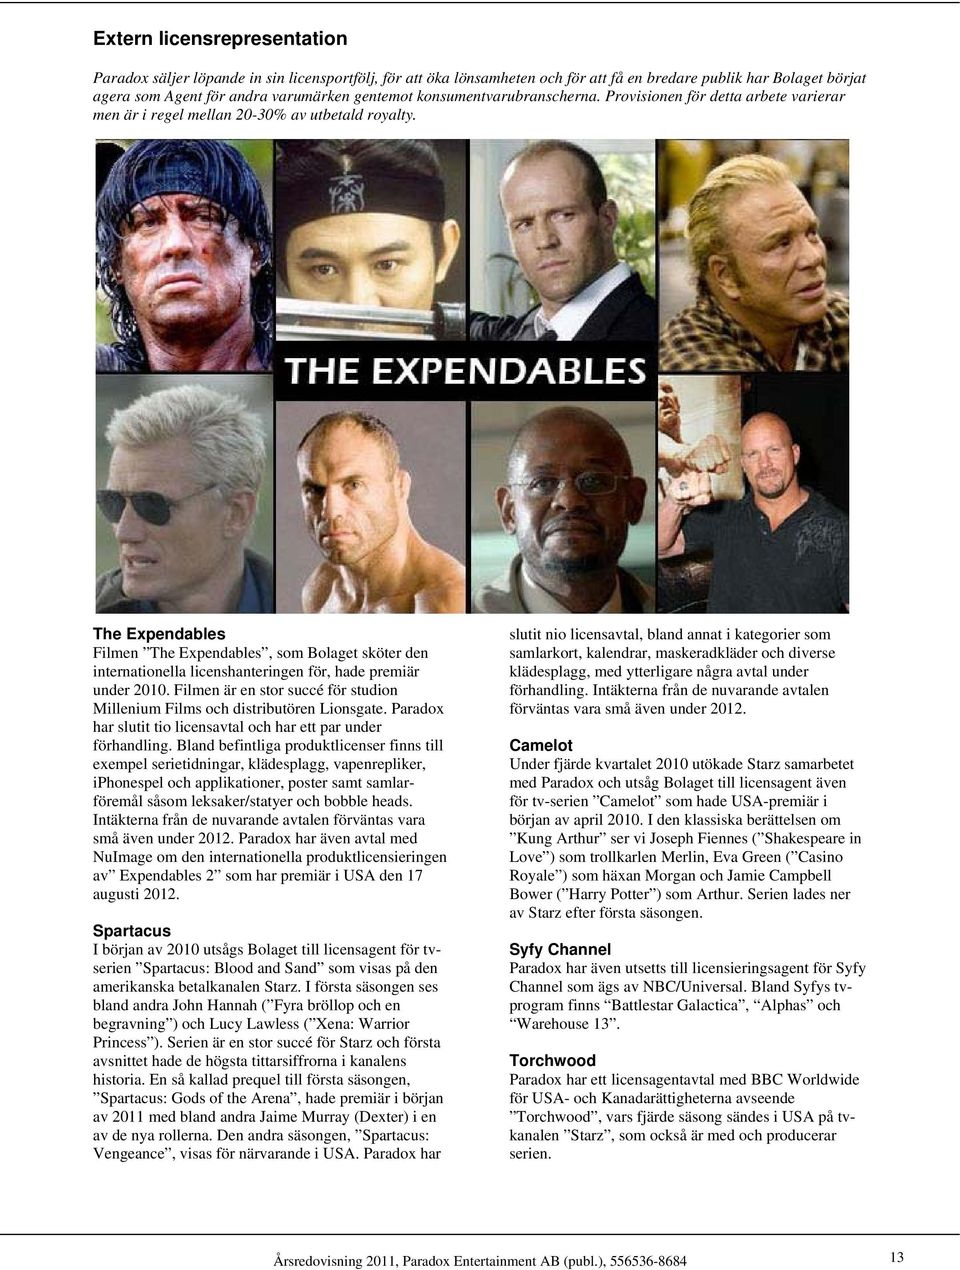 The Expendables Filmen The Expendables, som Bolaget sköter den internationella licenshanteringen för, hade premiär under 2010.